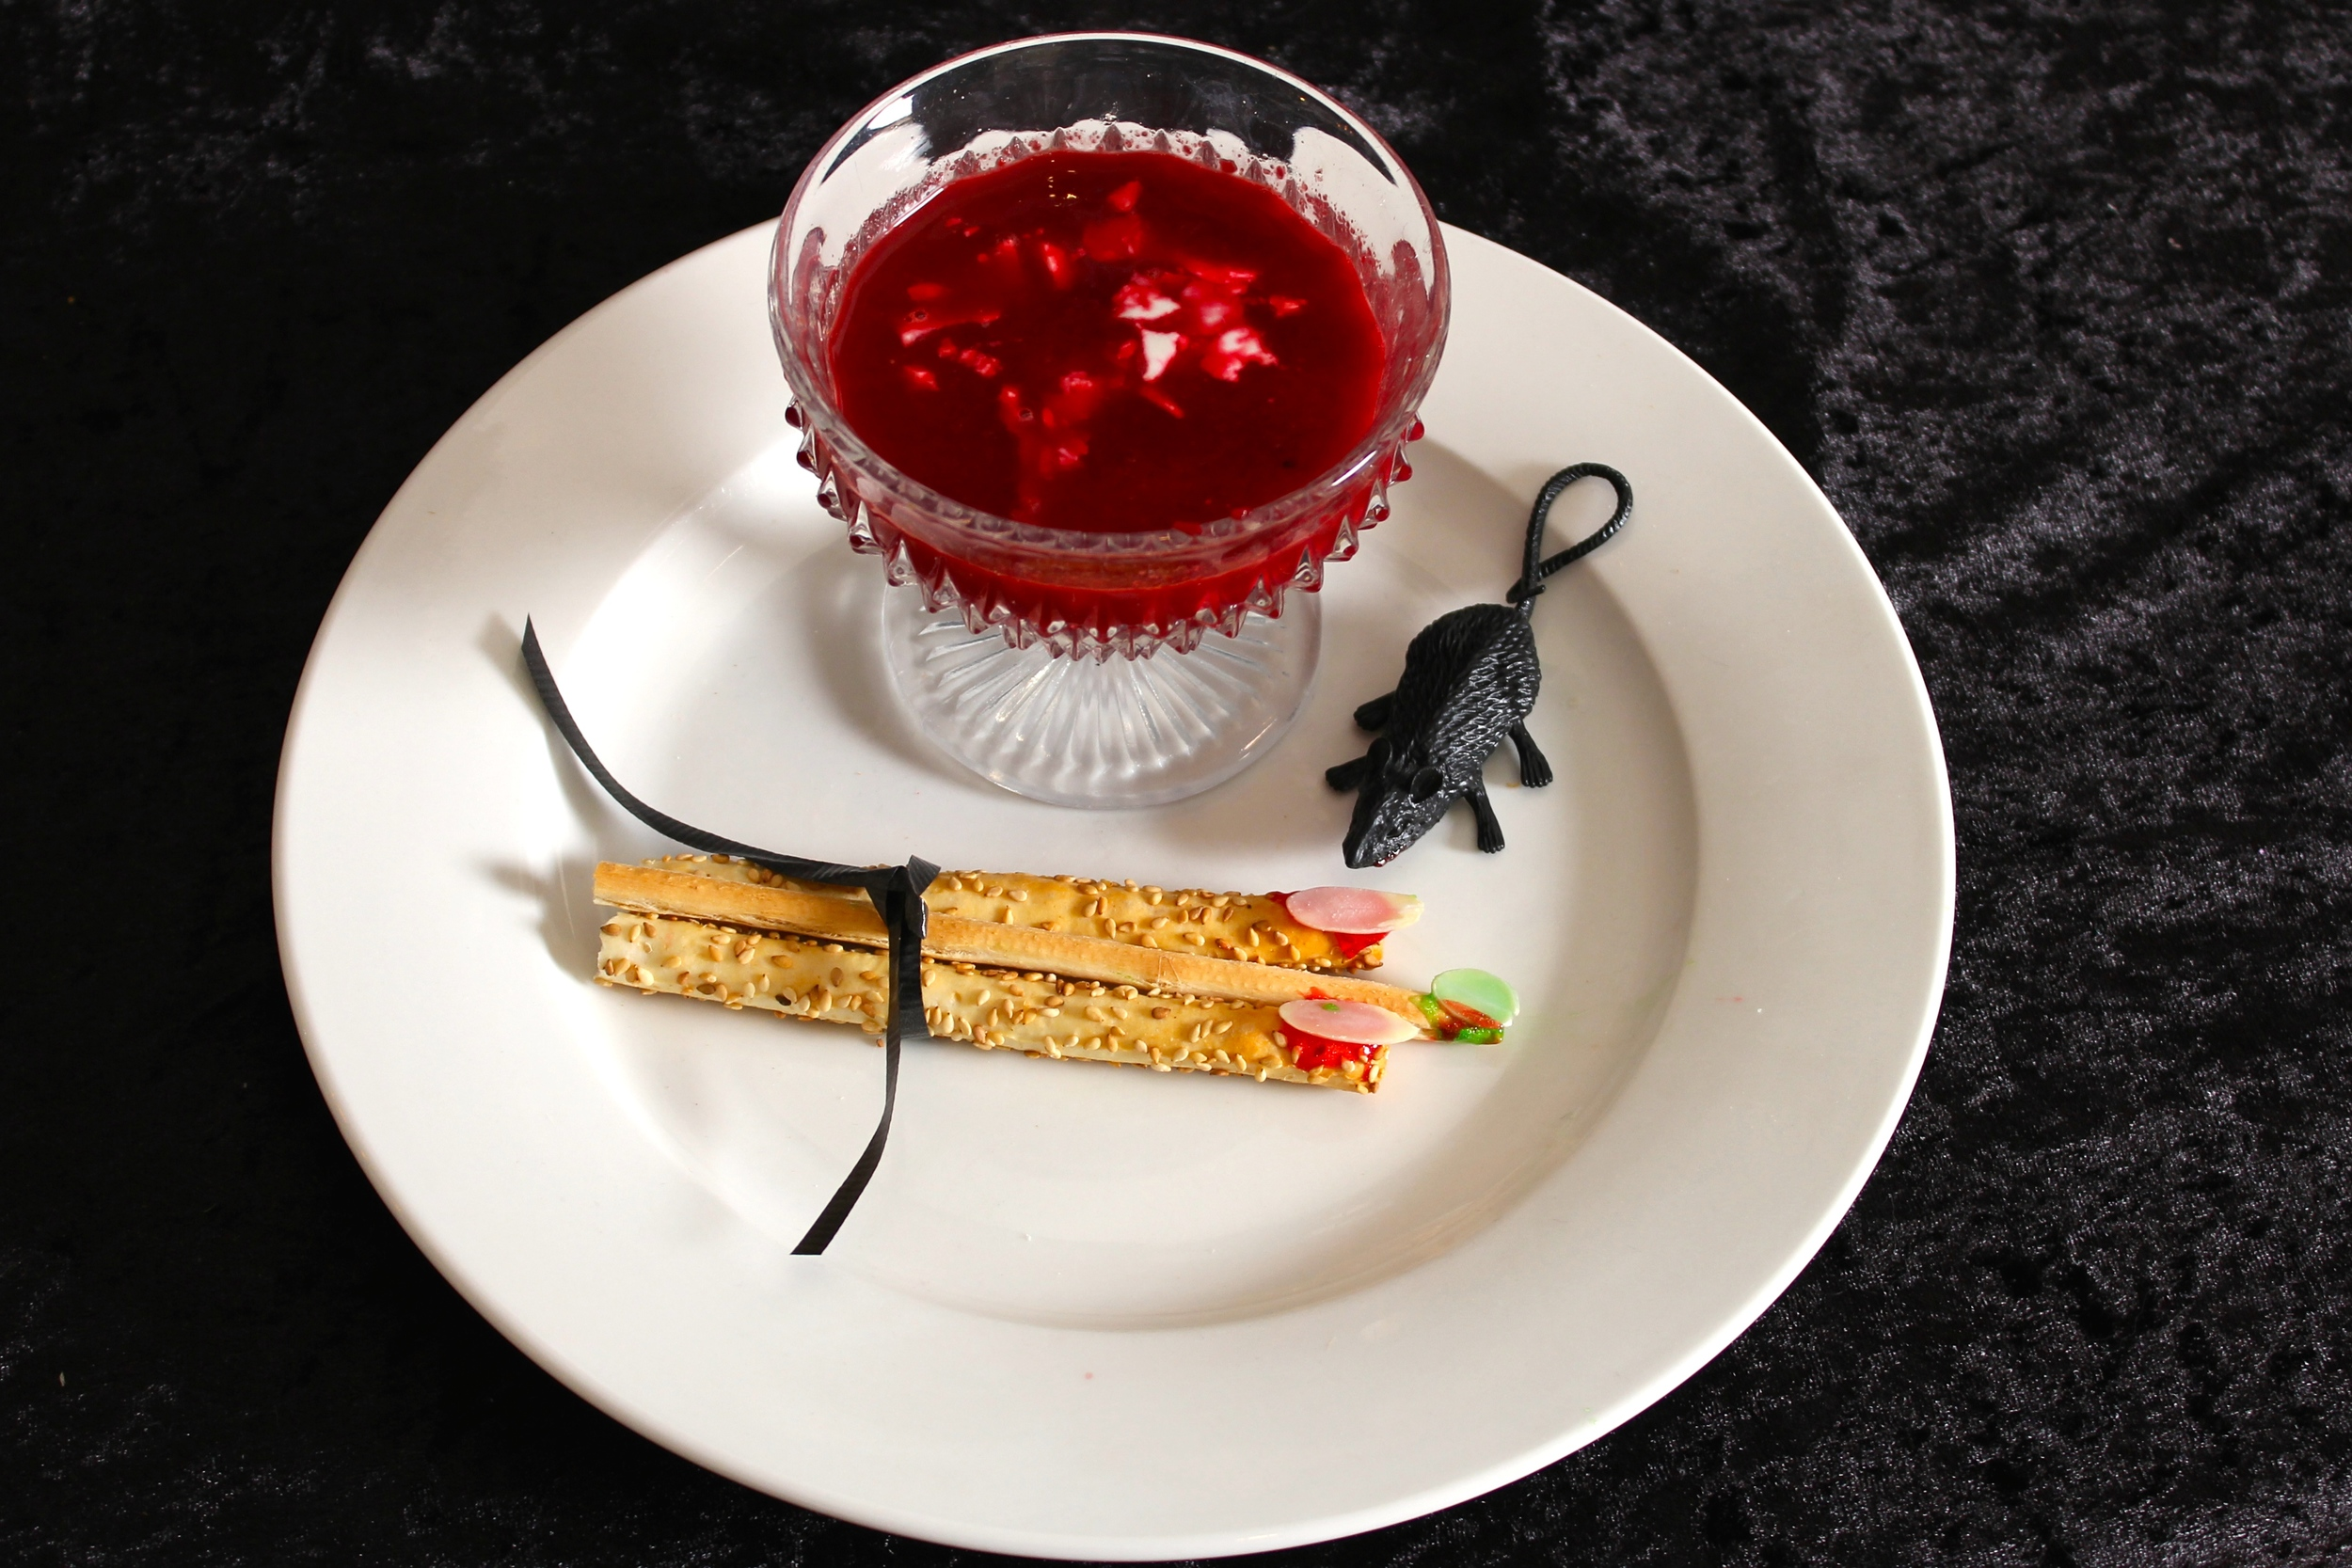 Gothic Dinner Party - Borscht with Italian Bread Sticks